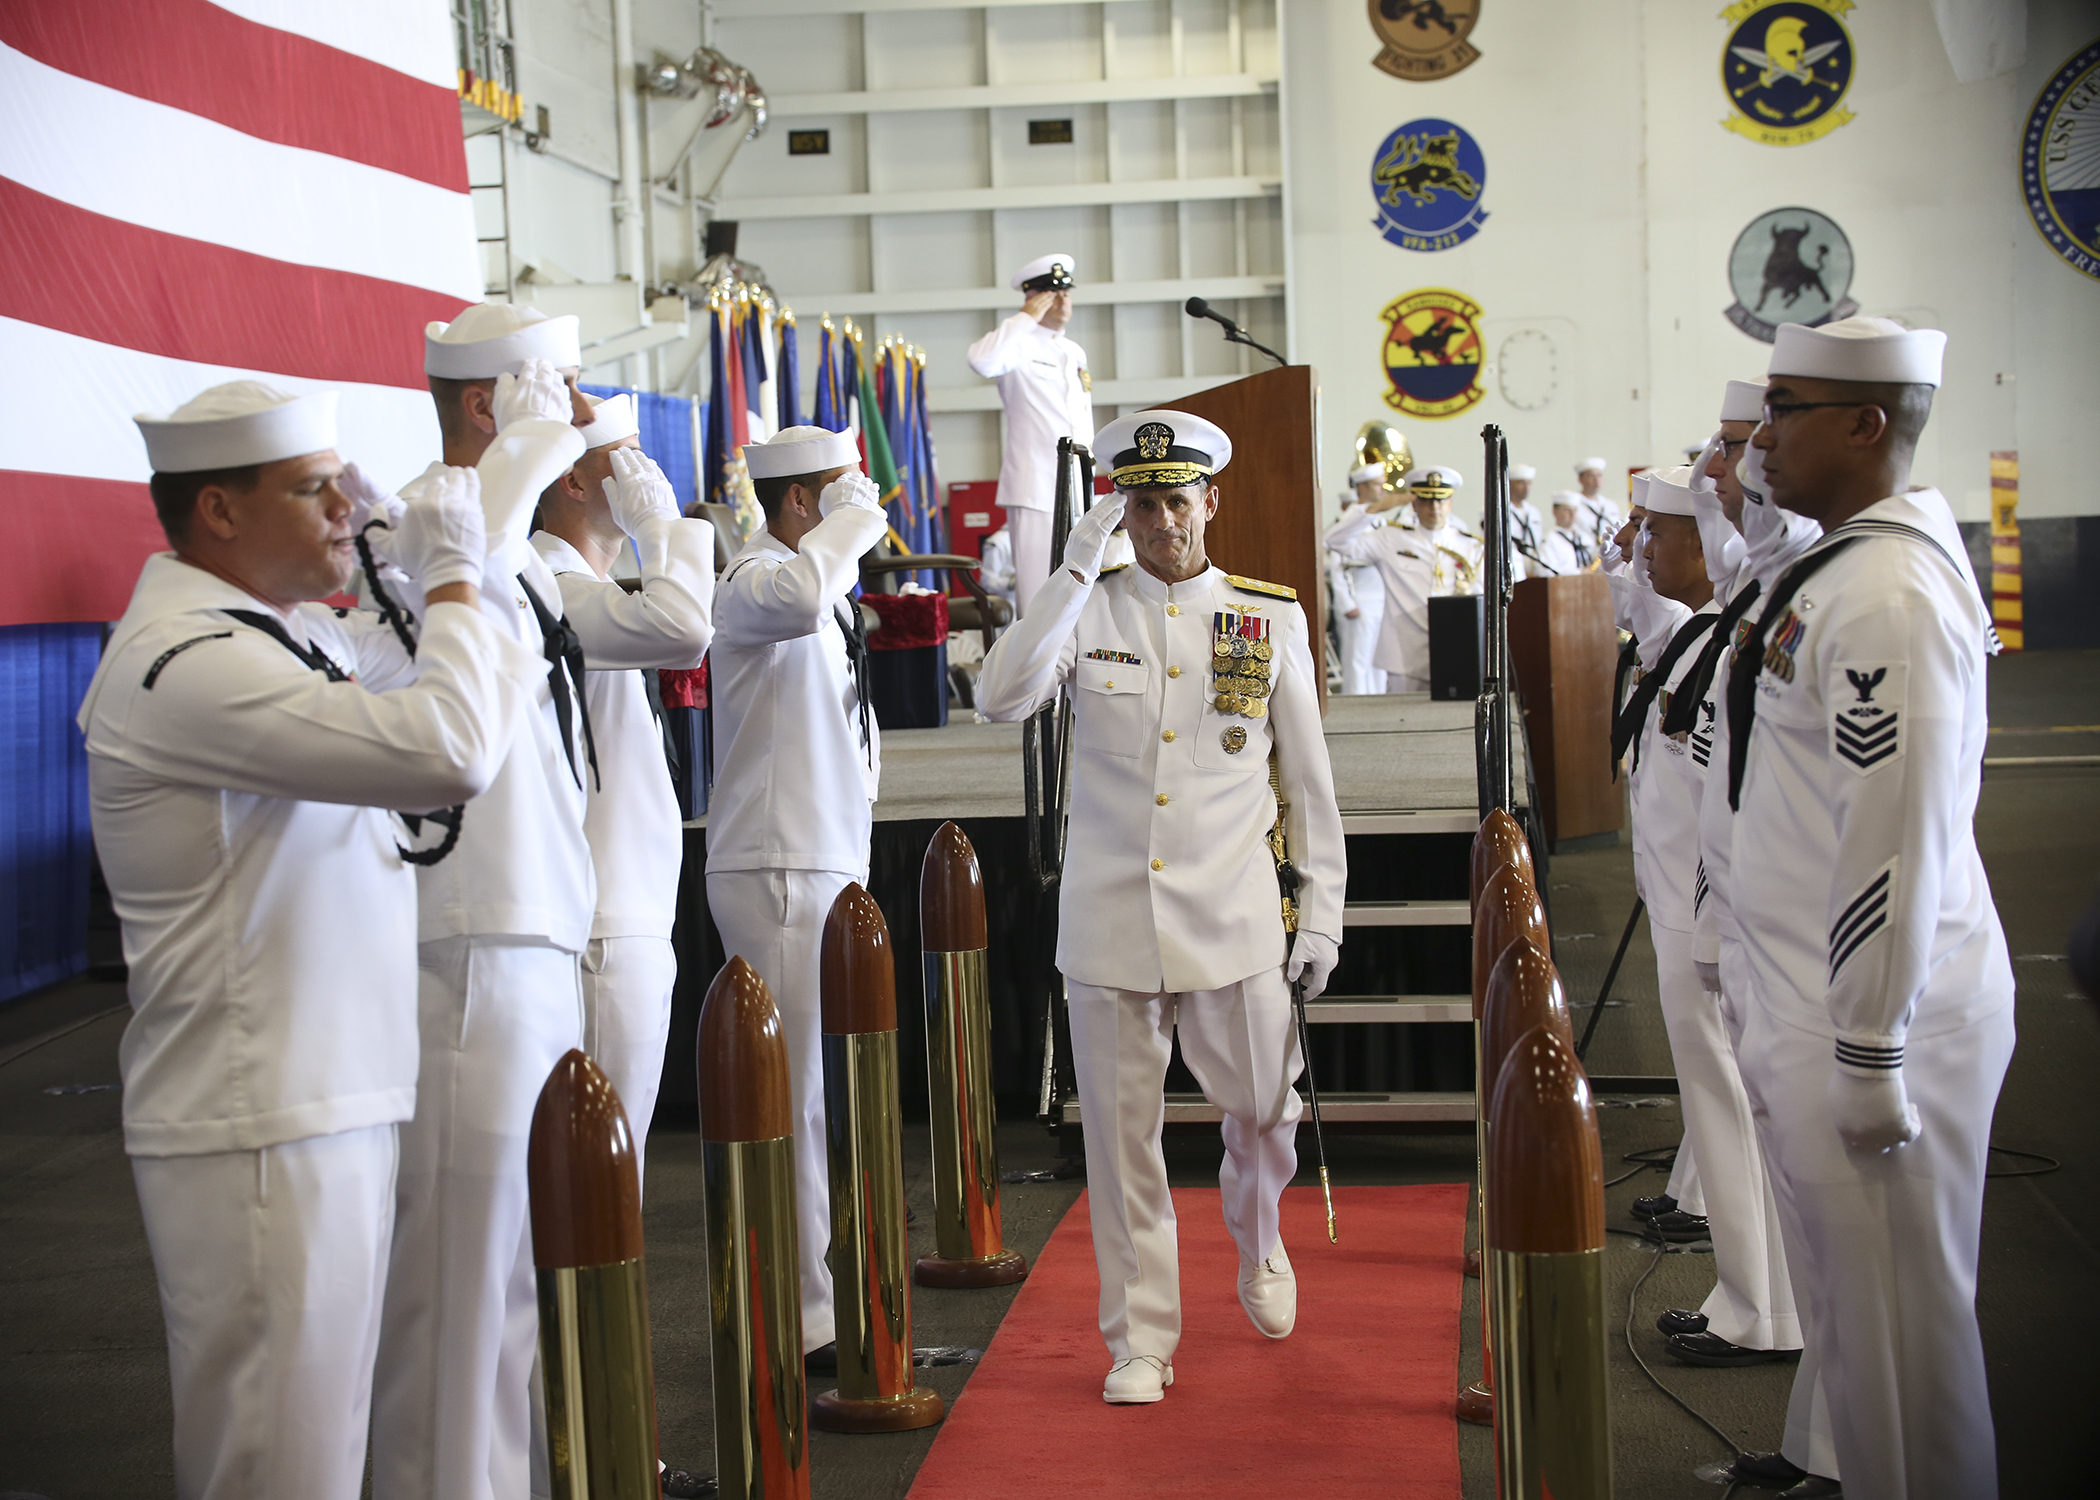 """US Vice Adm Andrew """"Woody"""" Lewis takes part in ceremonial opening of the US Navy 2nd Fleet aboard the nuclear aircraft carrier USS George H W Bush (CVN 77) on August 24, 2018. US Navy"""